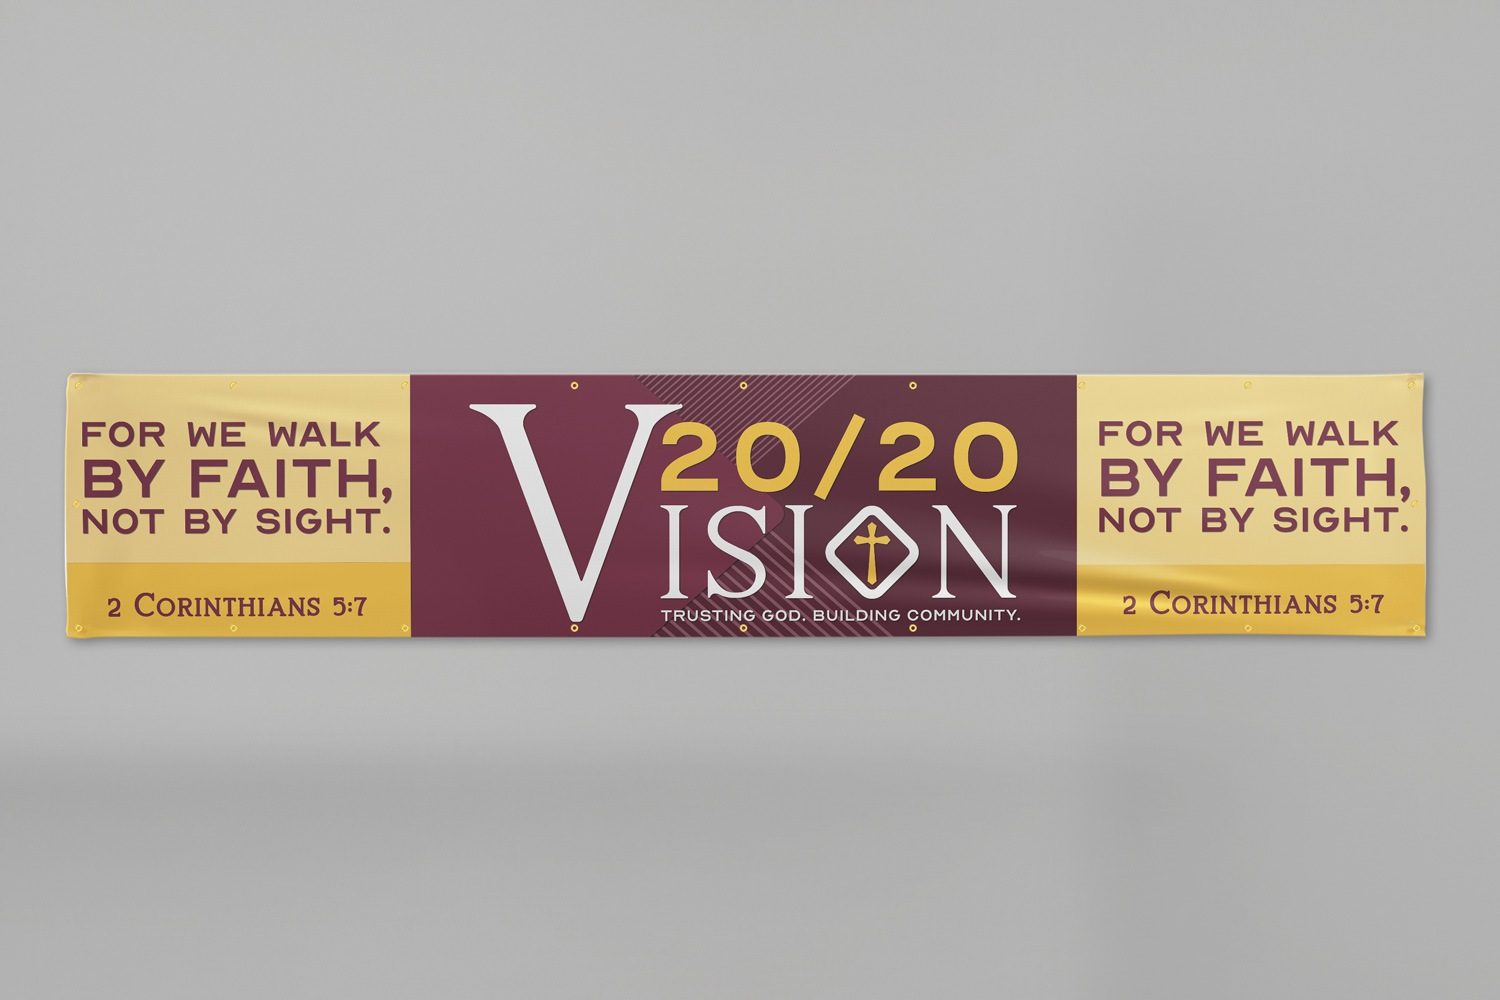 XL custom wall banners for church capital campaigns by Abstract Union in Lincoln, NE